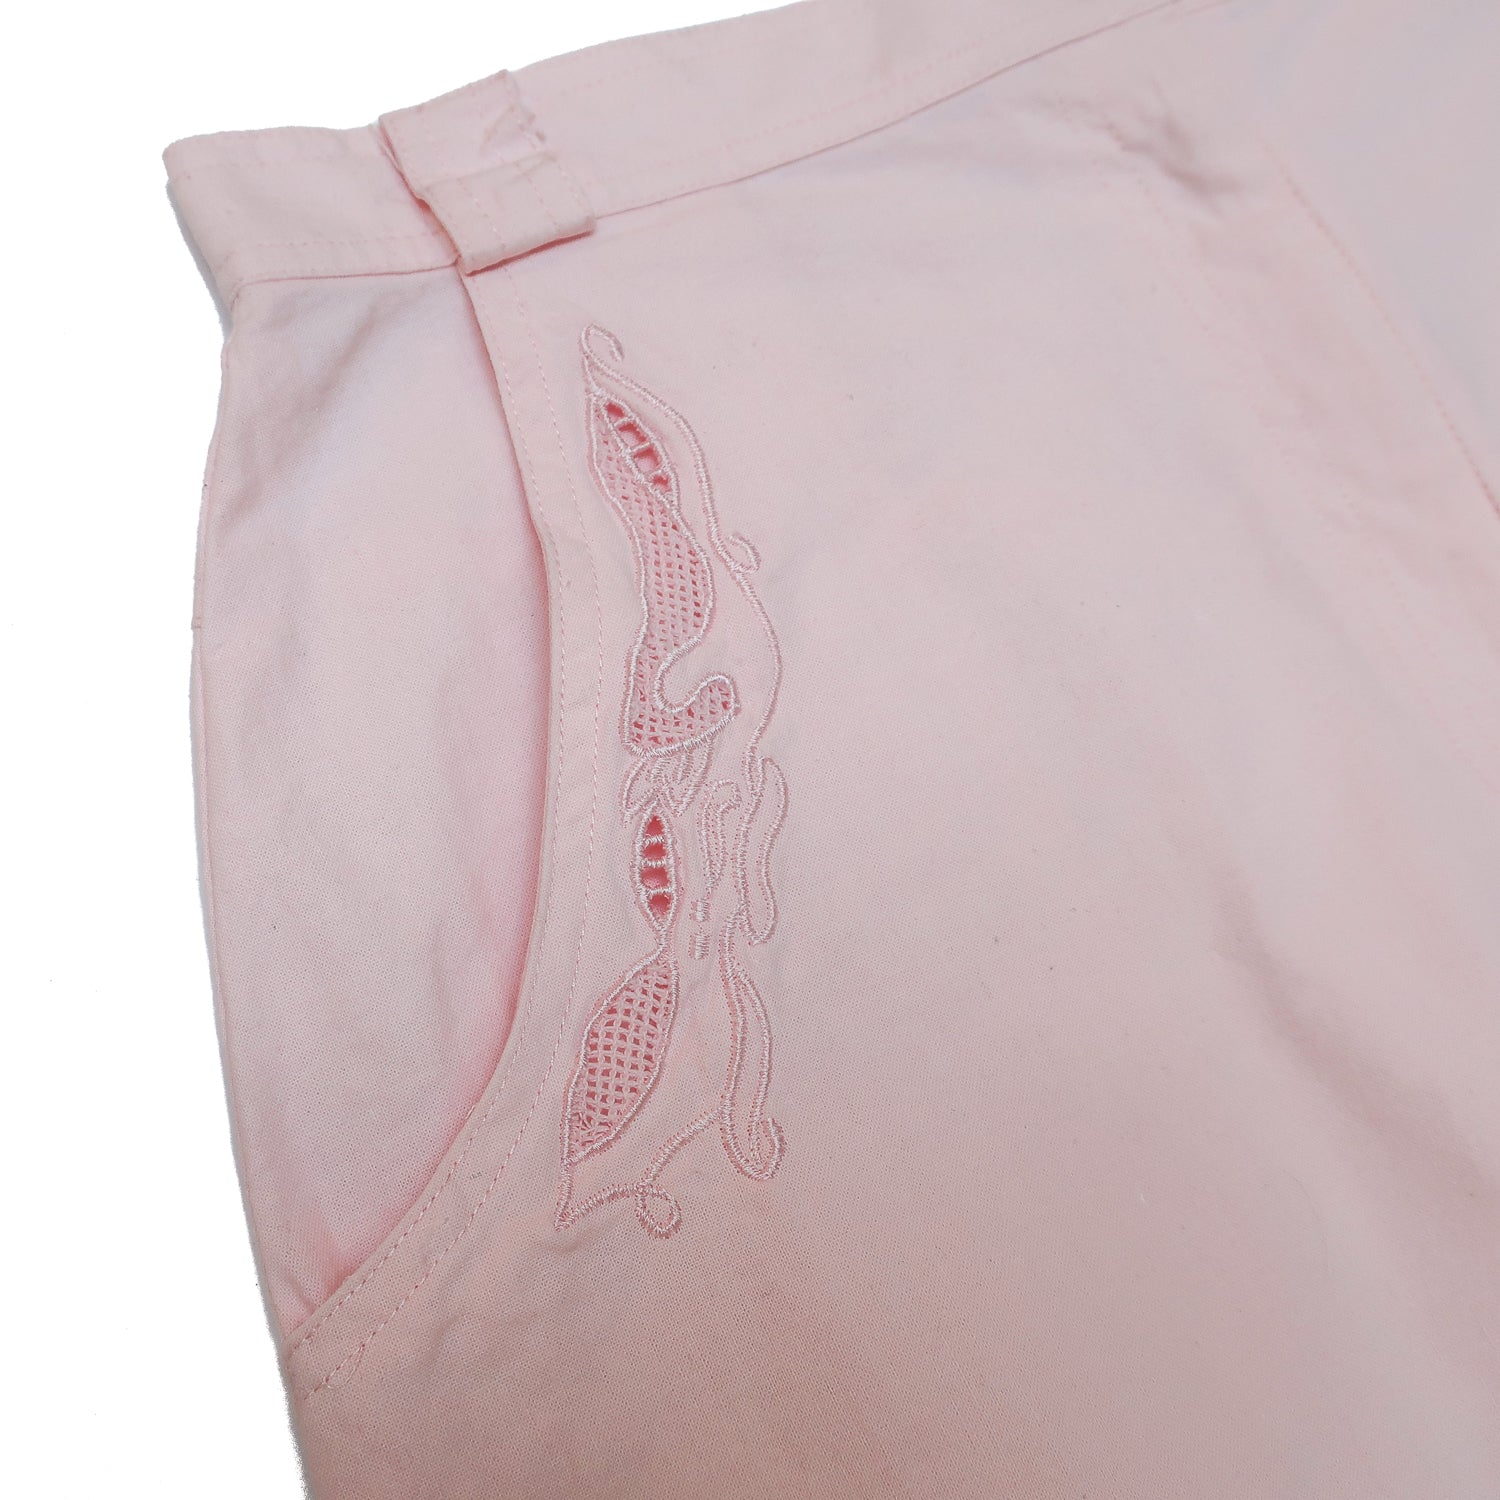 Second Room Vintage Clothing. Vintage pale baby pink knee length skirt, with embroidered detail and pockets. Skirt is 100% cotton, and very lightweight. Has belt loops, back slit with 3 buttons, and a zipper and button fly front closure. Free North American shipping on all orders.